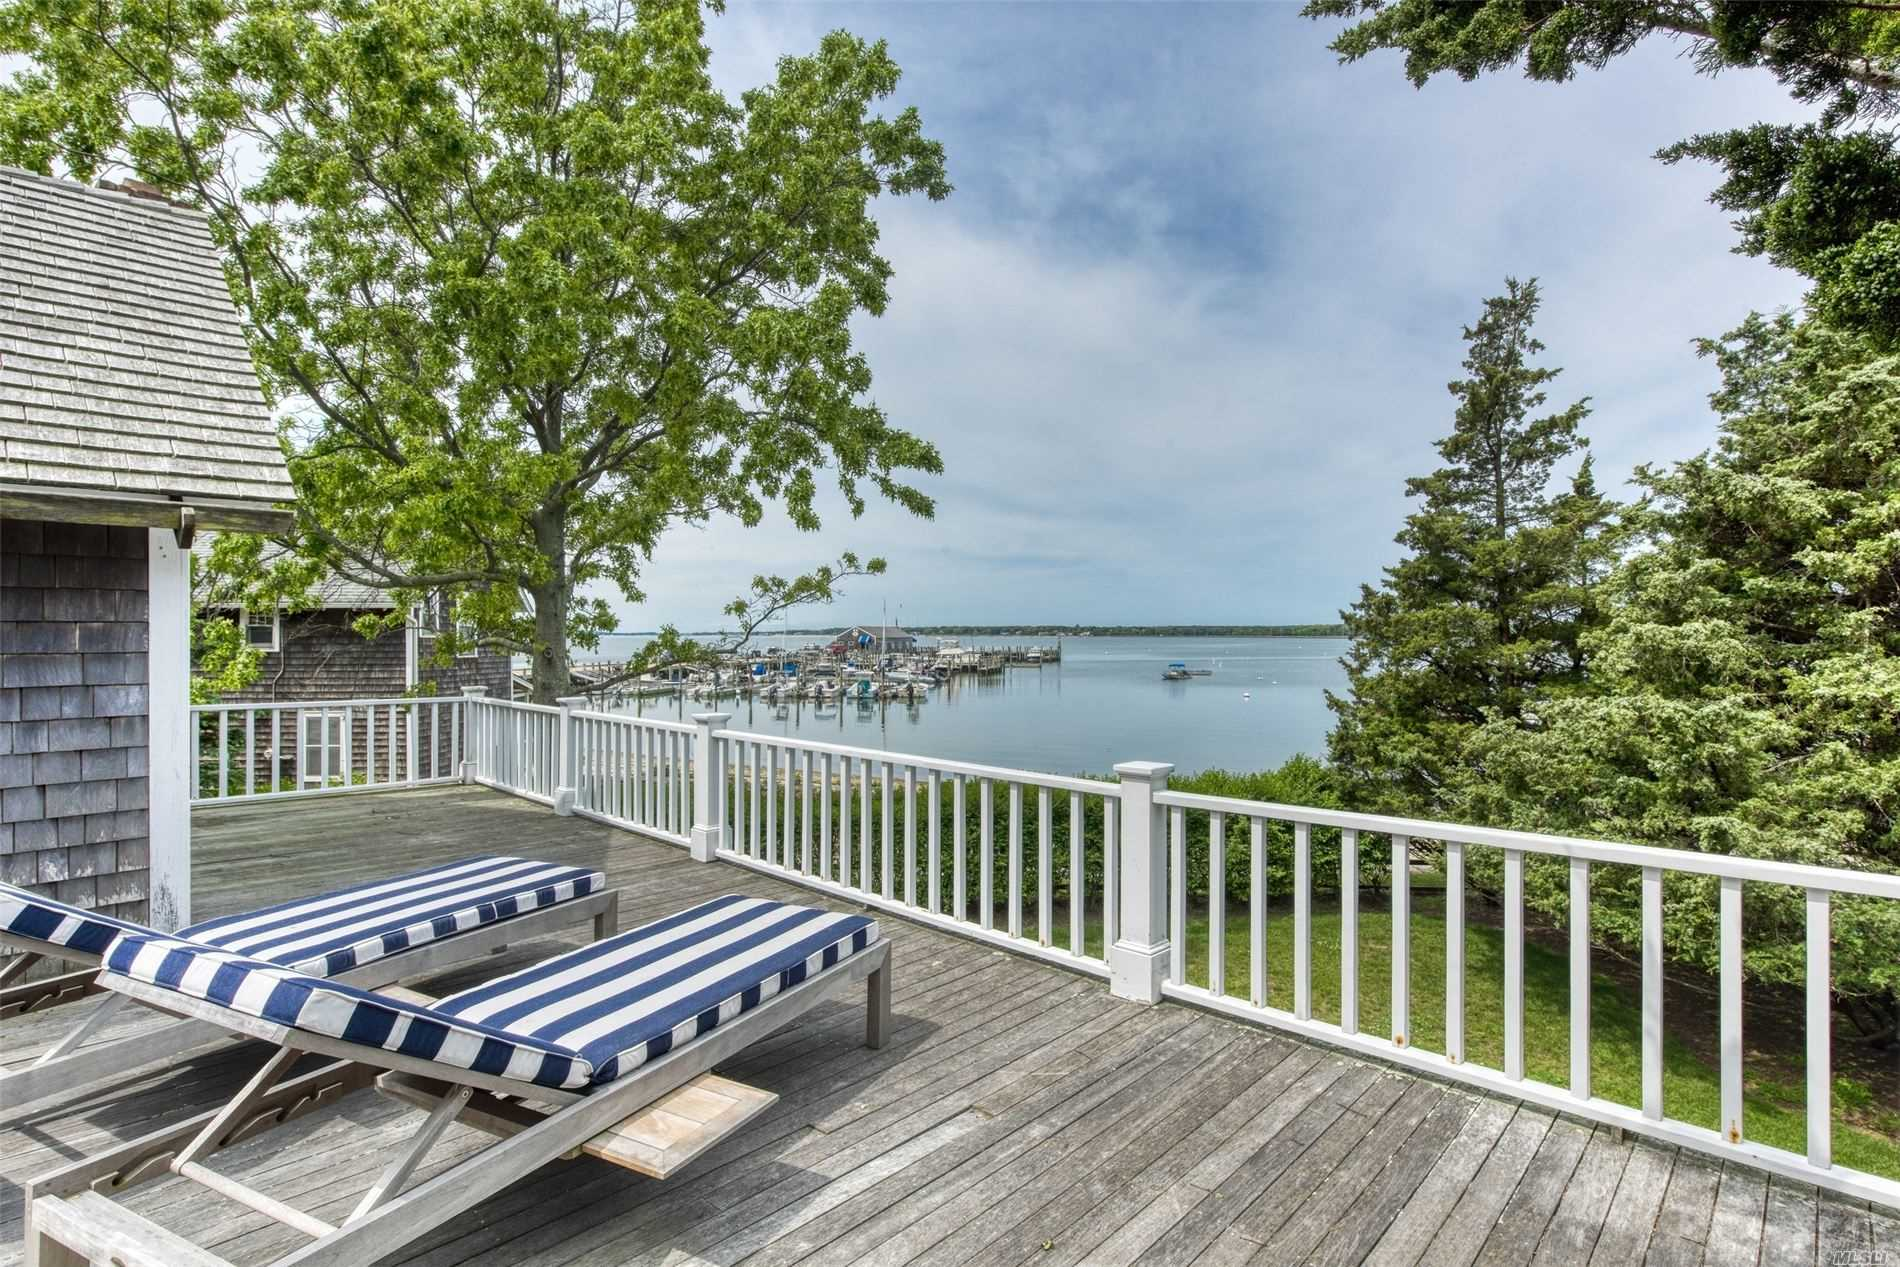 Enjoy Summer In The Crown Jewel Of Orient Village. Restored & Meticulously Maintained With Original Exposed Beams, Wide-Plank Floors, Period Hardware, 3 Updated Wood Burning Fireplaces, Custom Cabinetry & Woodwork. 2 Large Decks Span The Back Of The House Overlooking Orient Harbor & Yacht Club. June $14, 000; July $22, 000